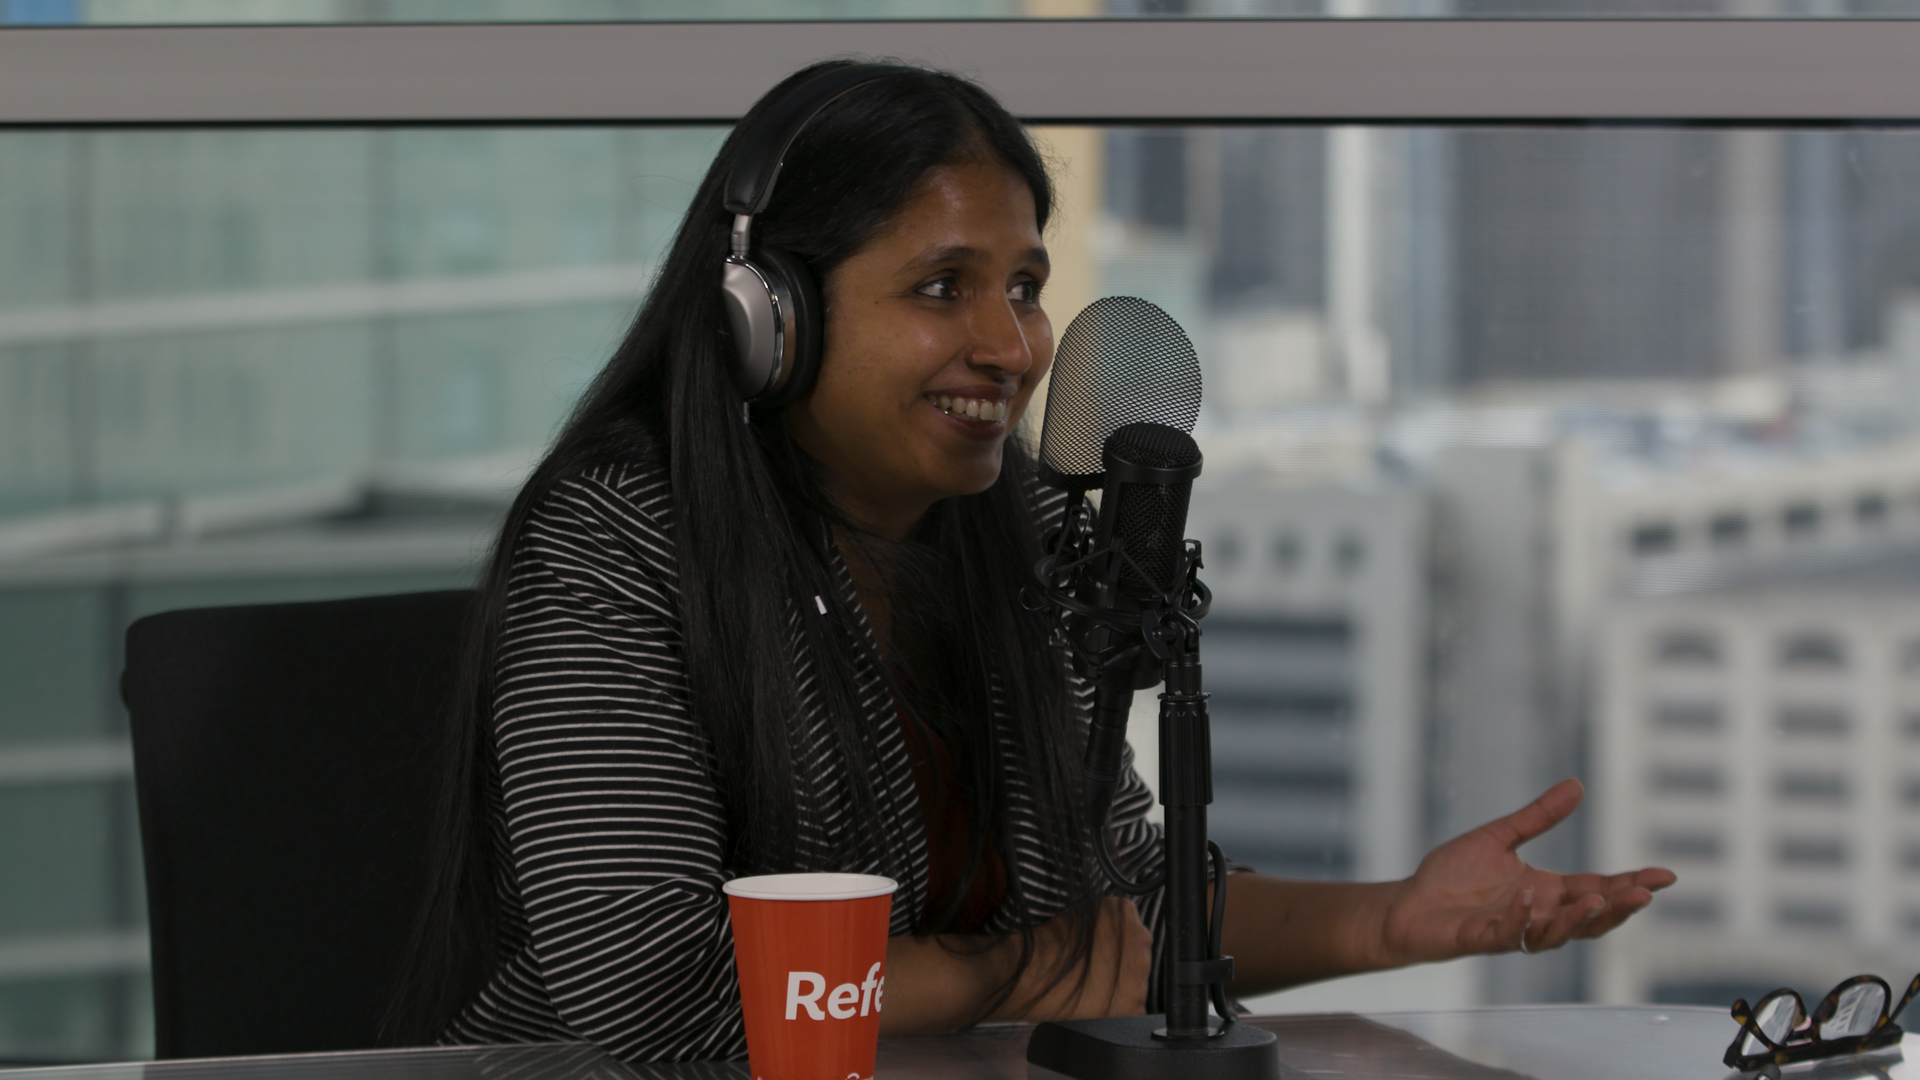 THE SPEED OF THE GAME: EPISODE 4 - DR. SHOHINI GHOSE